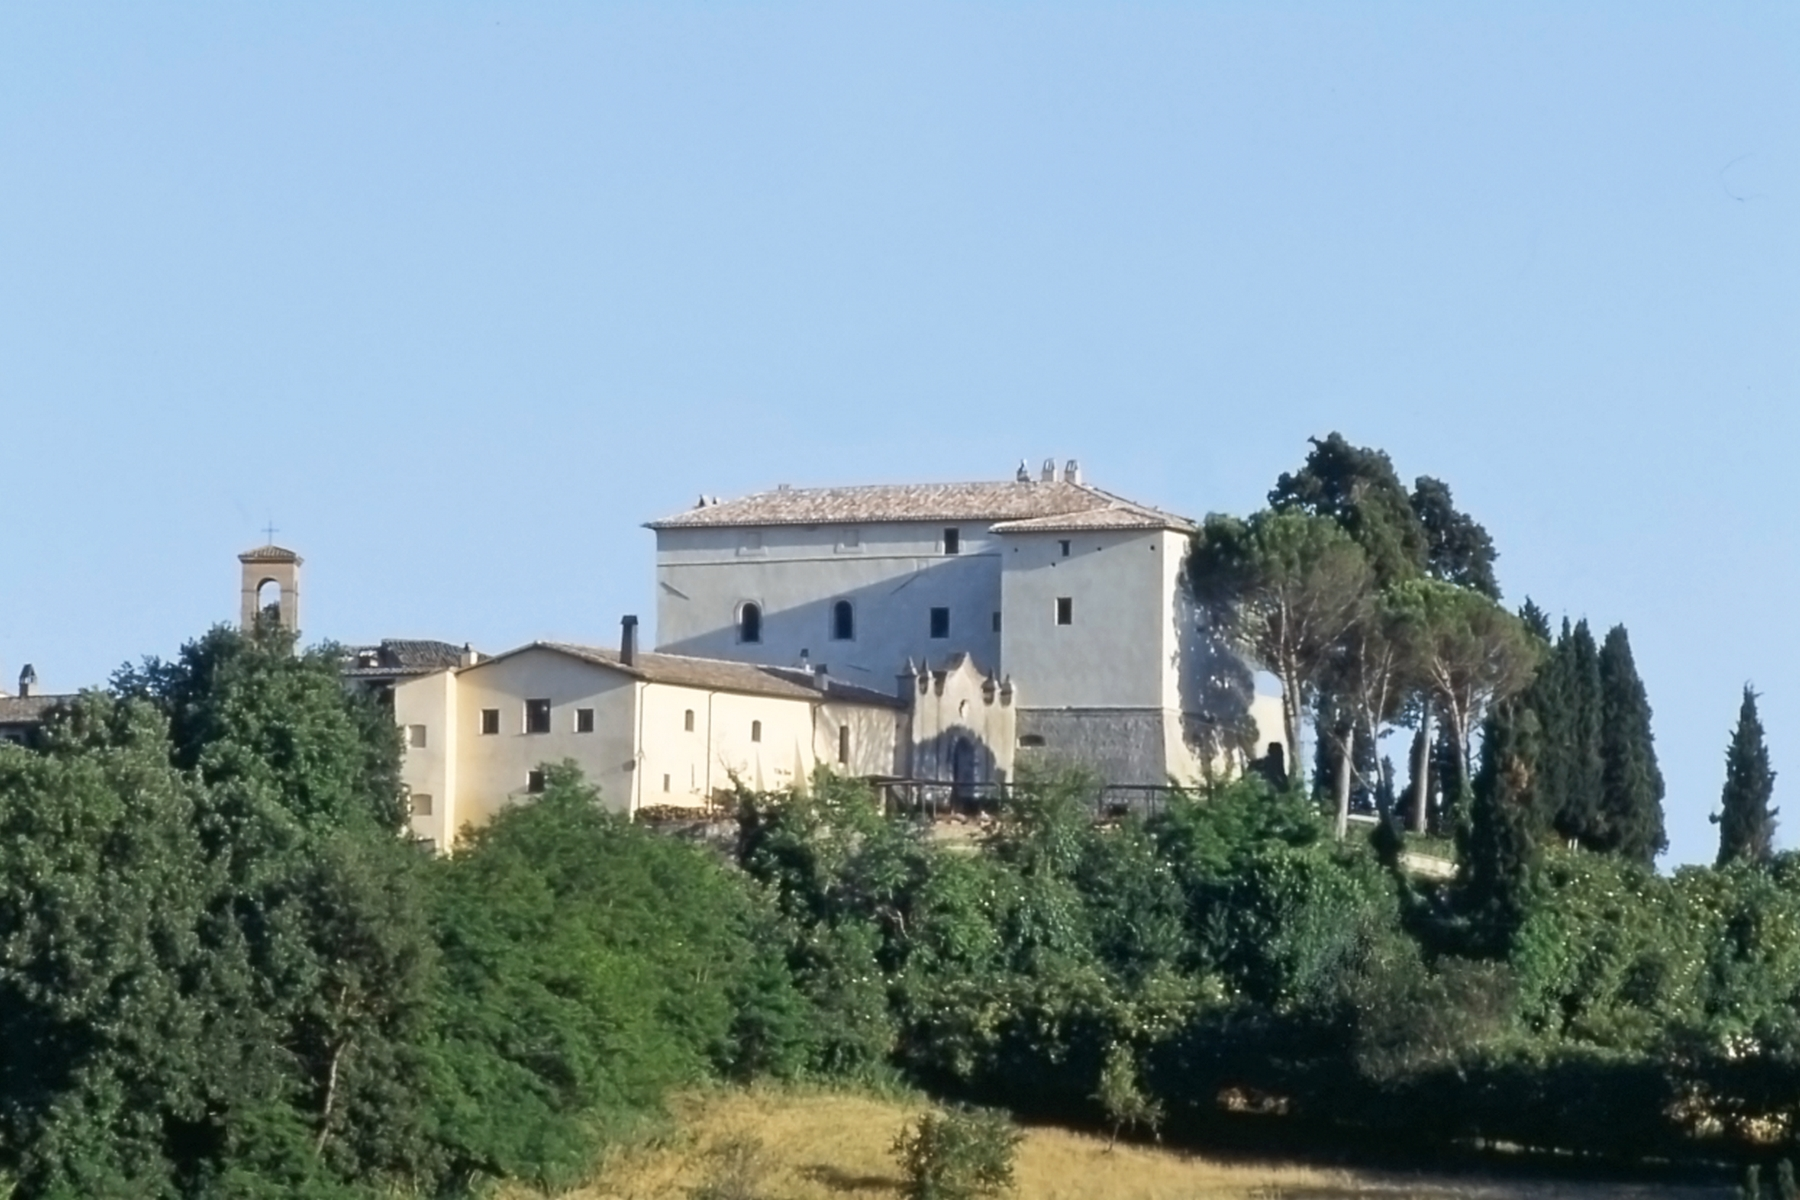 Single Family Home for Sale at Glamorous Castle with hamlet, country houses and 290ha of land Acquasparta, Terni, Italy